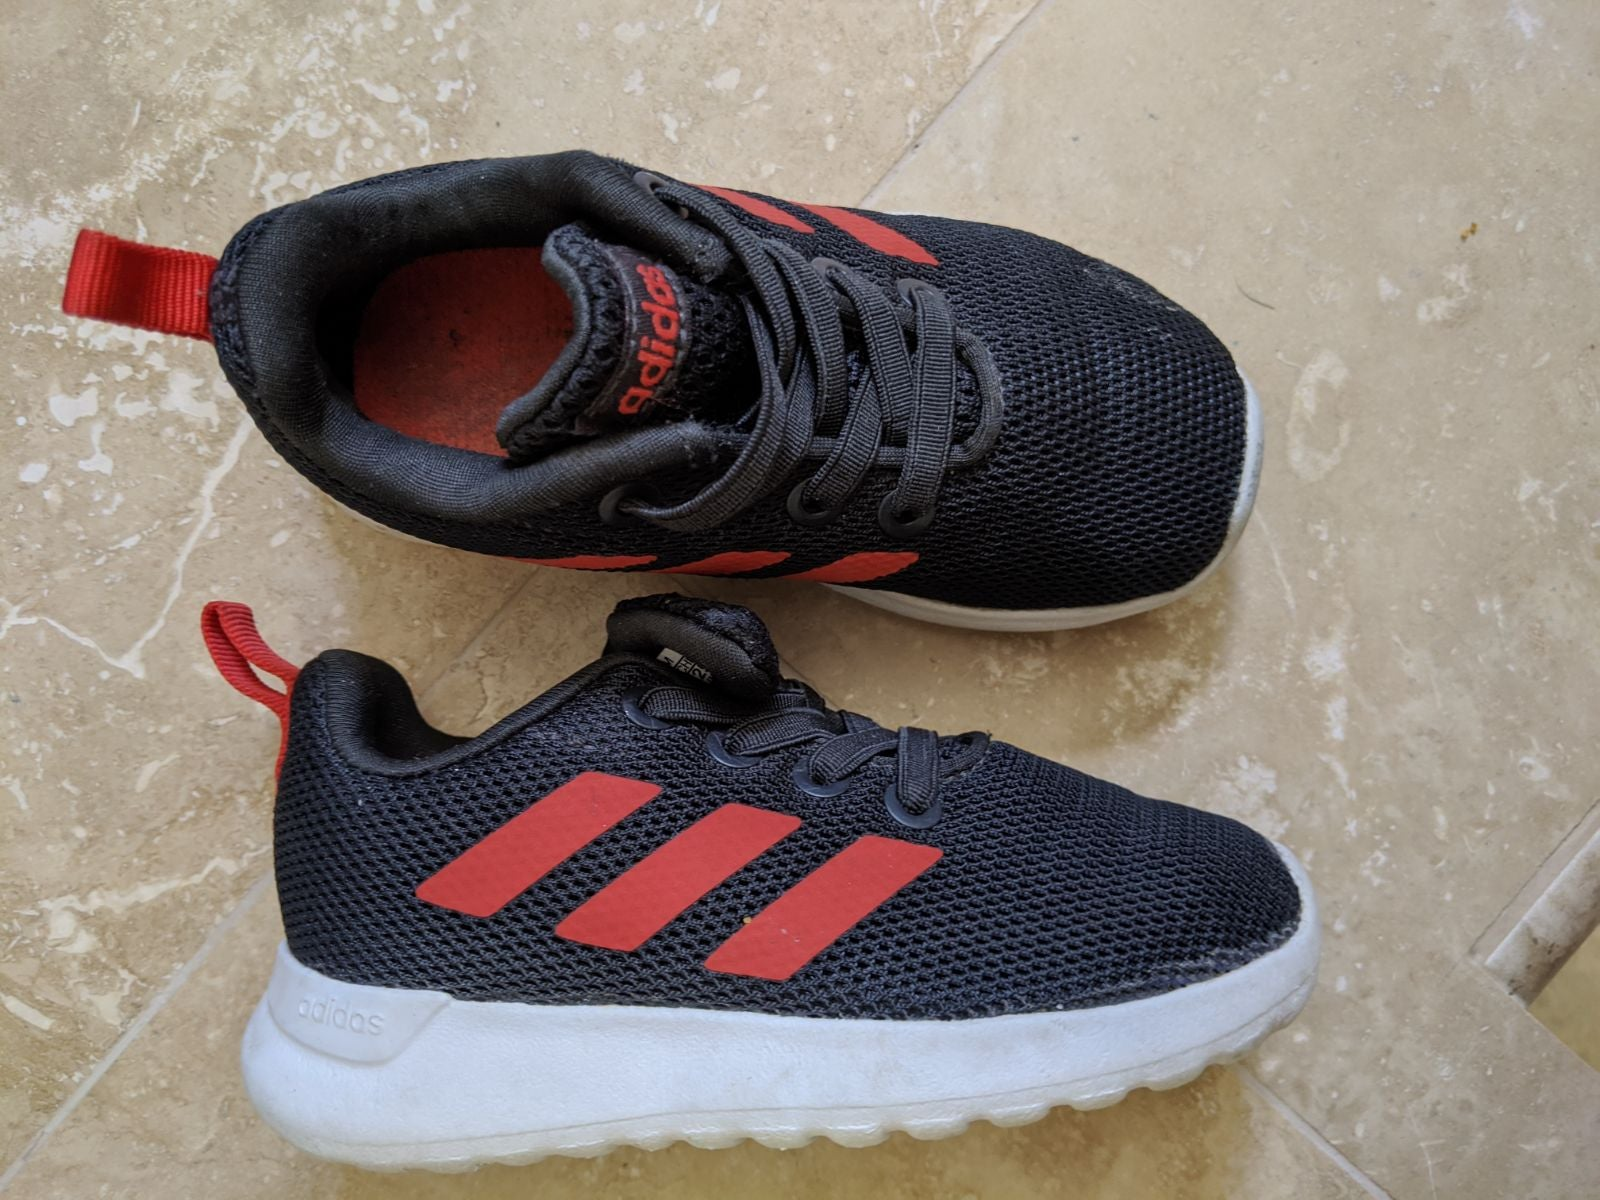 Toddler Adidas shoes, size 6 k